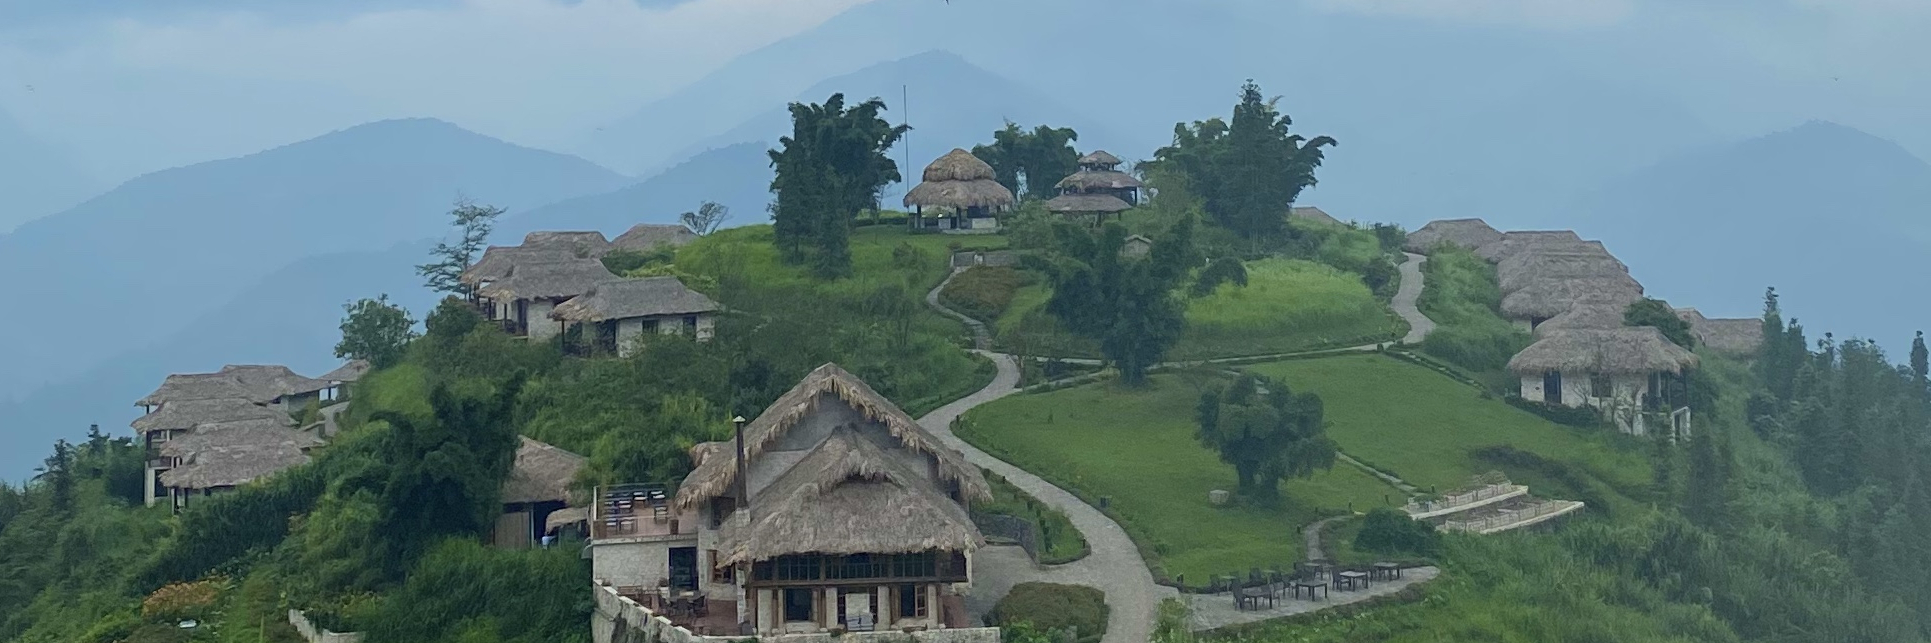 https://gody.vn/blog/vuhuynh03085119/post/topas-ecolodge-sapa-7374